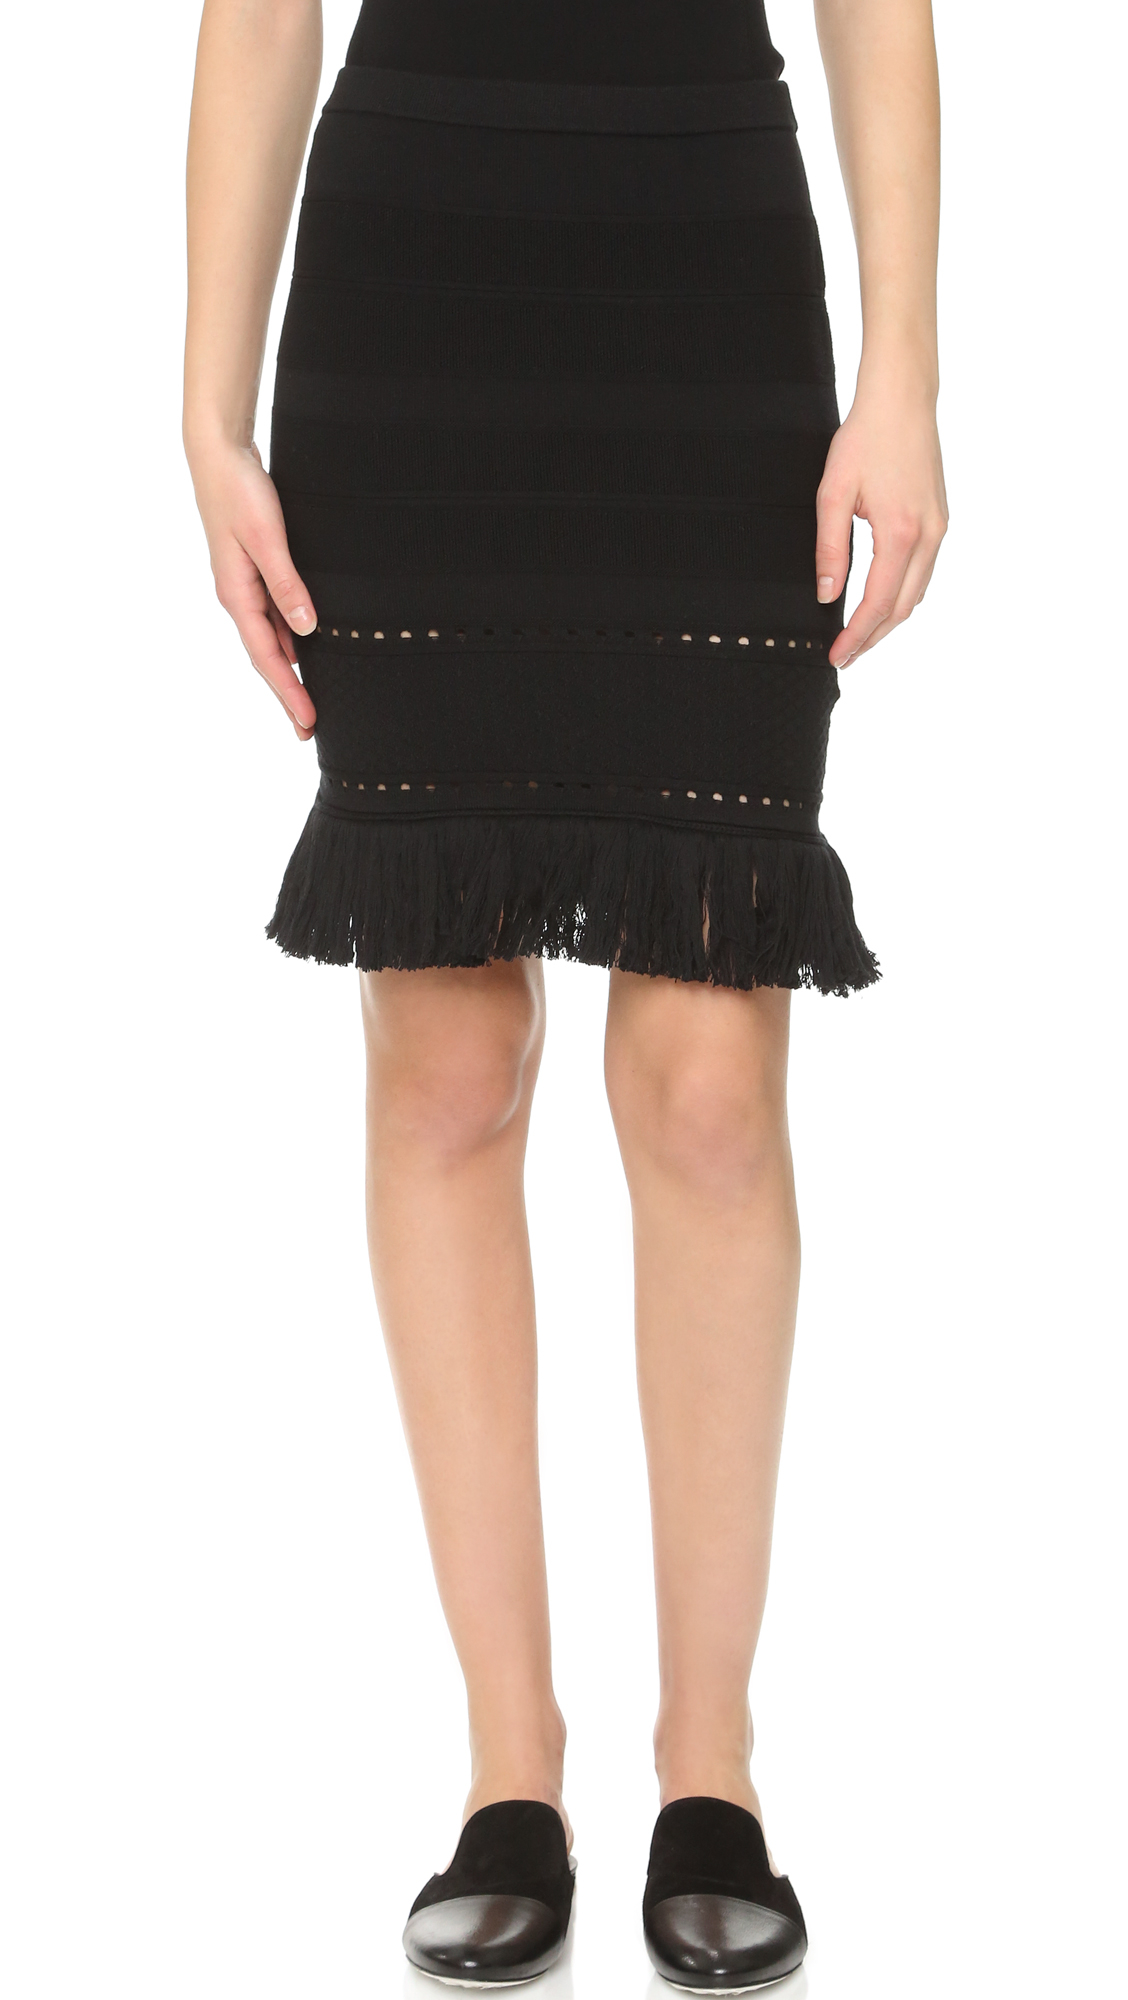 Find a great selection of women's skirts at 440v.cf Shop for mini, maxi, pencil, high waisted, denim, and more from top brands like Topshop, Free people, Caslon, Levi's, Vince and more. Free shipping and returns.